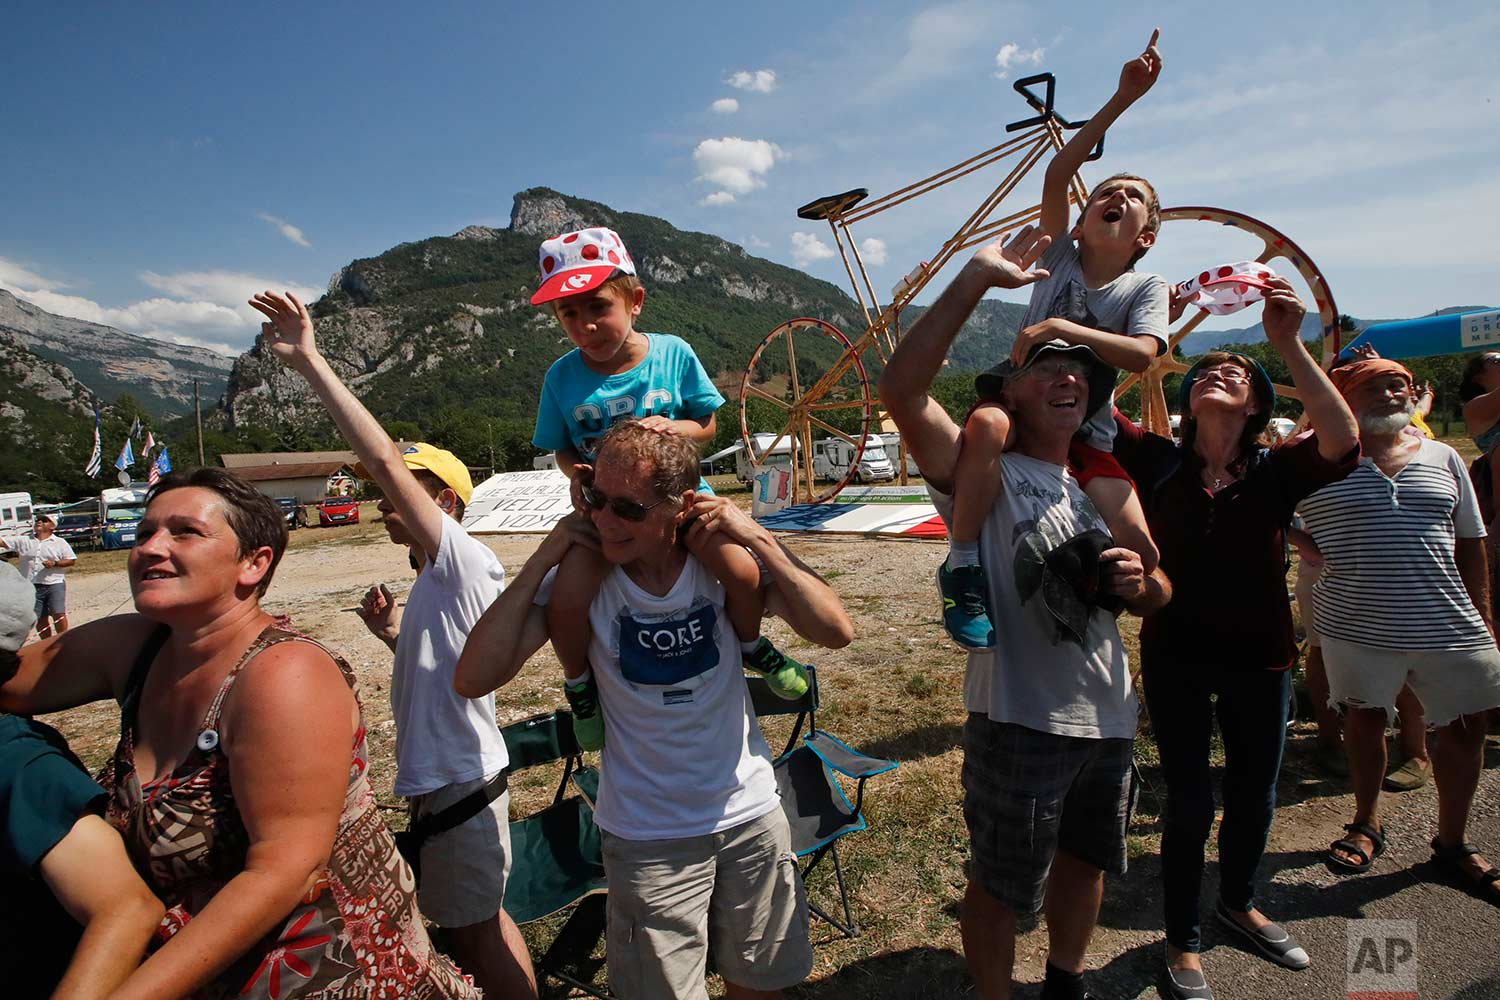 Fans lining the road look up at helicopters passing overhead during the thirteenth stage of the Tour de France cycling race over 169.5 kilometers (105.3 miles) with start in Bourg d'Oisans and finish in Valence, France, Friday July 20, 2018. (AP Photo/Christophe Ena )